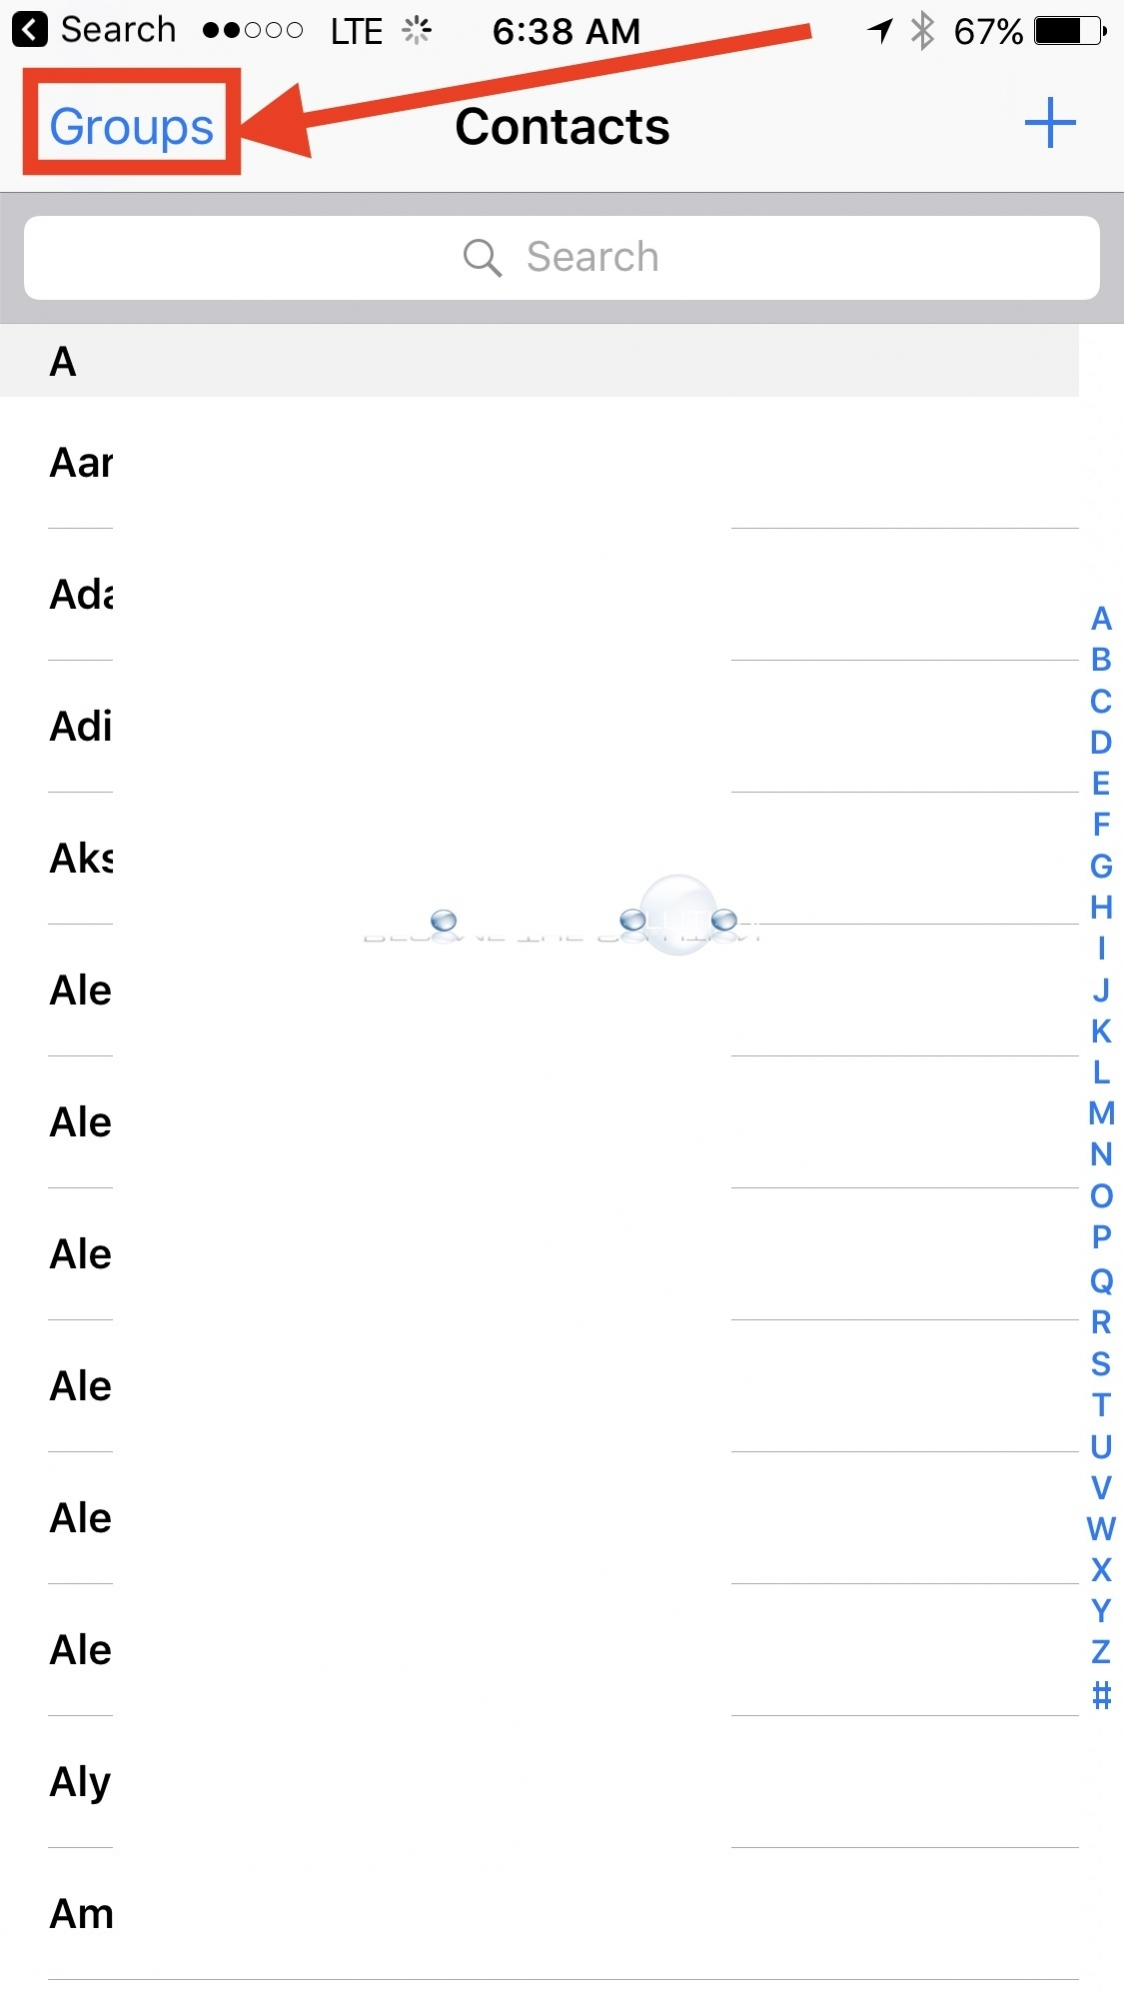 iPhone contact groups